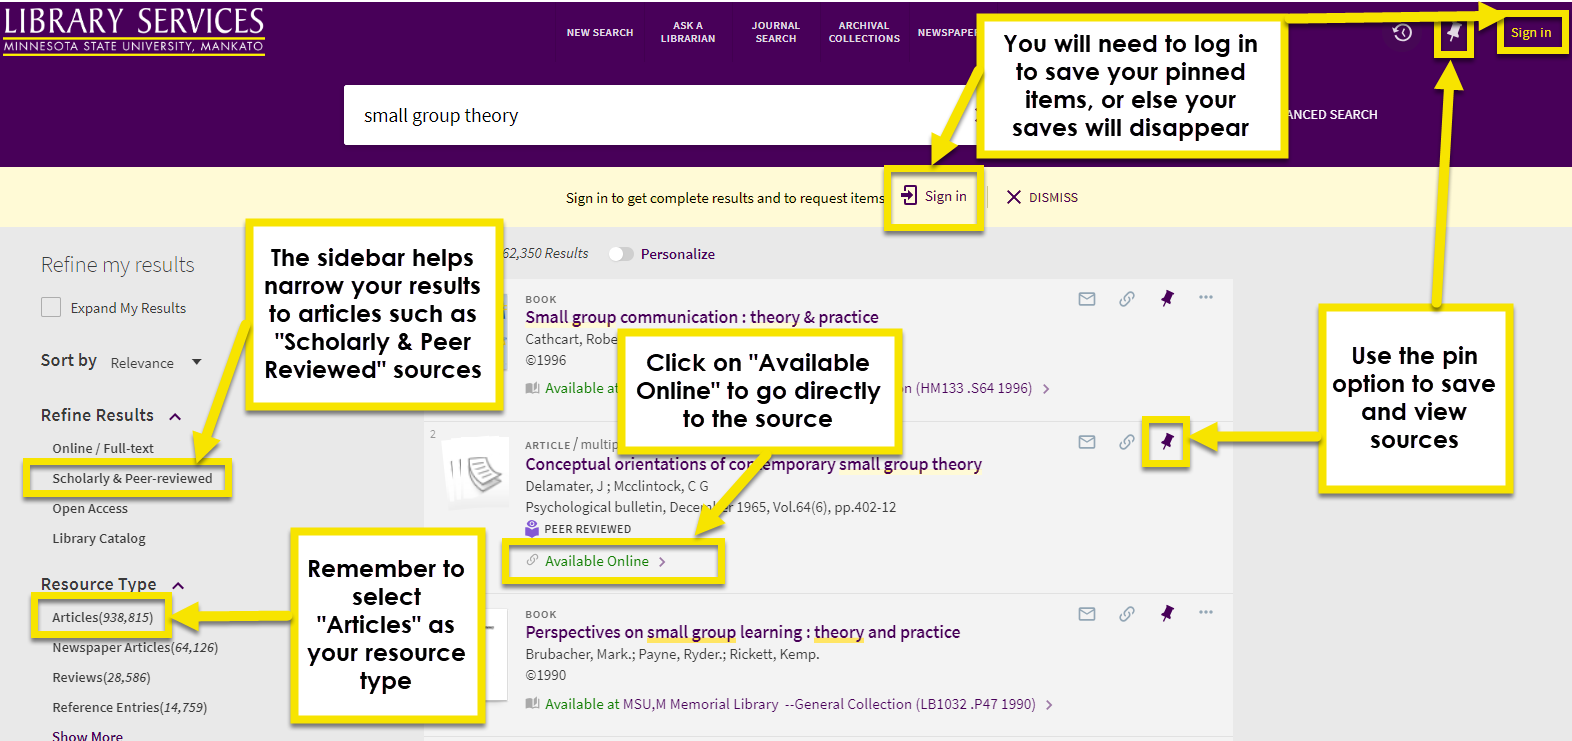 """Use the filters on the page to limit your search, for instance to the resource type of """"articles"""" and the option of """"scholarly and peer reviewed sources"""". Use the pin option on items to save them for later. To save your pins long term, you will need to log in to your library account. finally, to access a source, click on available online"""